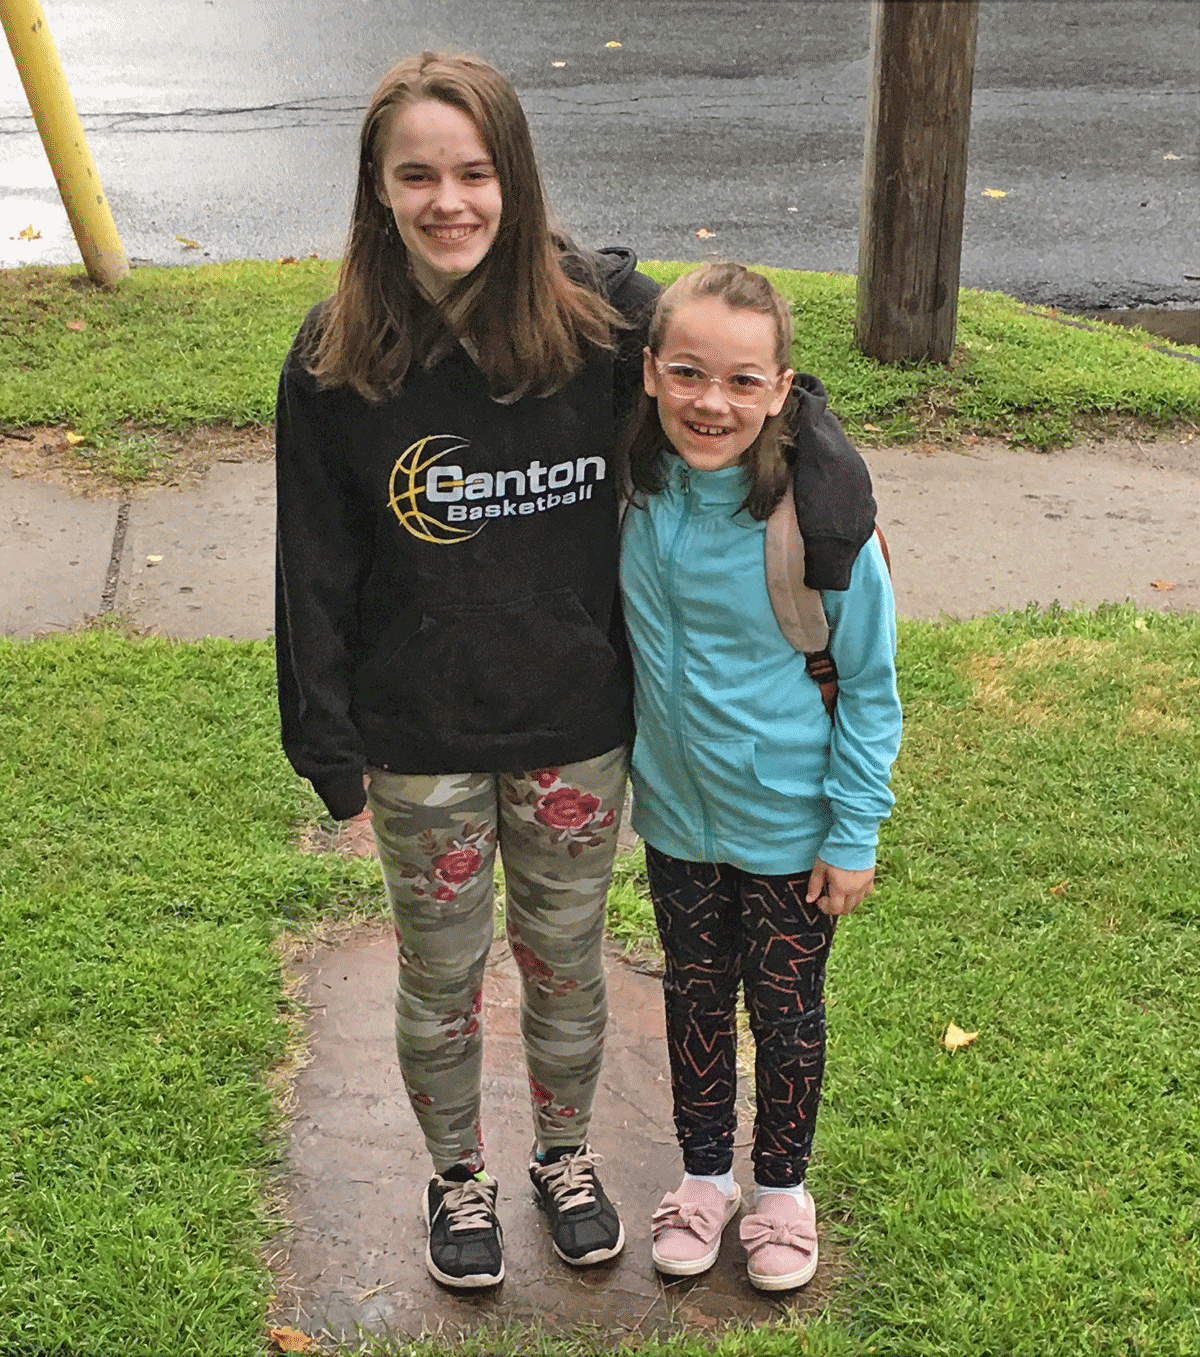 Emma, eighth grade, and Aaliyah, fifth grade, are pictured before the first day of school at middle school at Canton Central. Photo submitted by Teresa Oney.